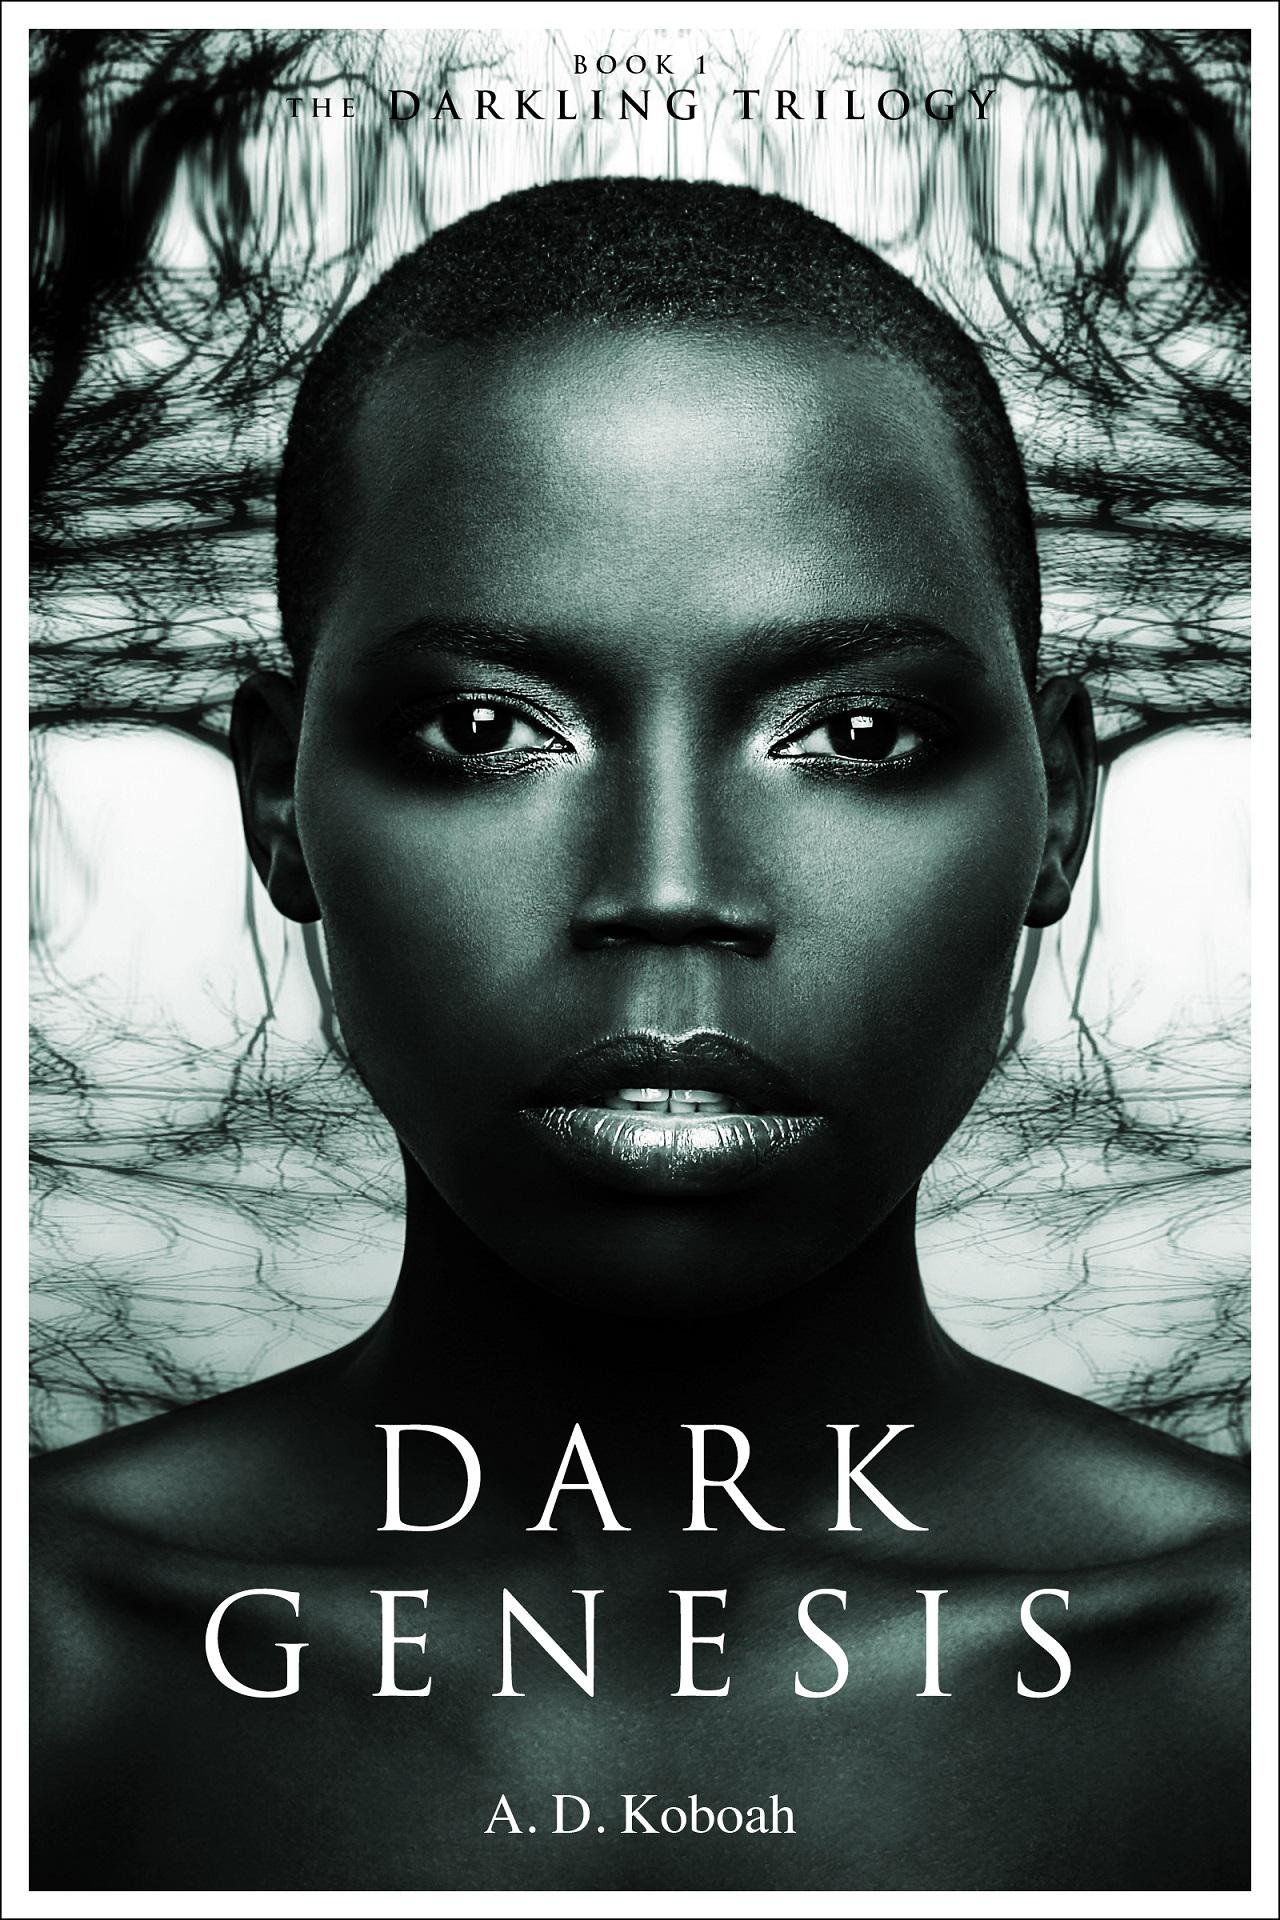 Check out this Heart-pounding Historical Vampire Series, THE DARKLING TRILOGY!